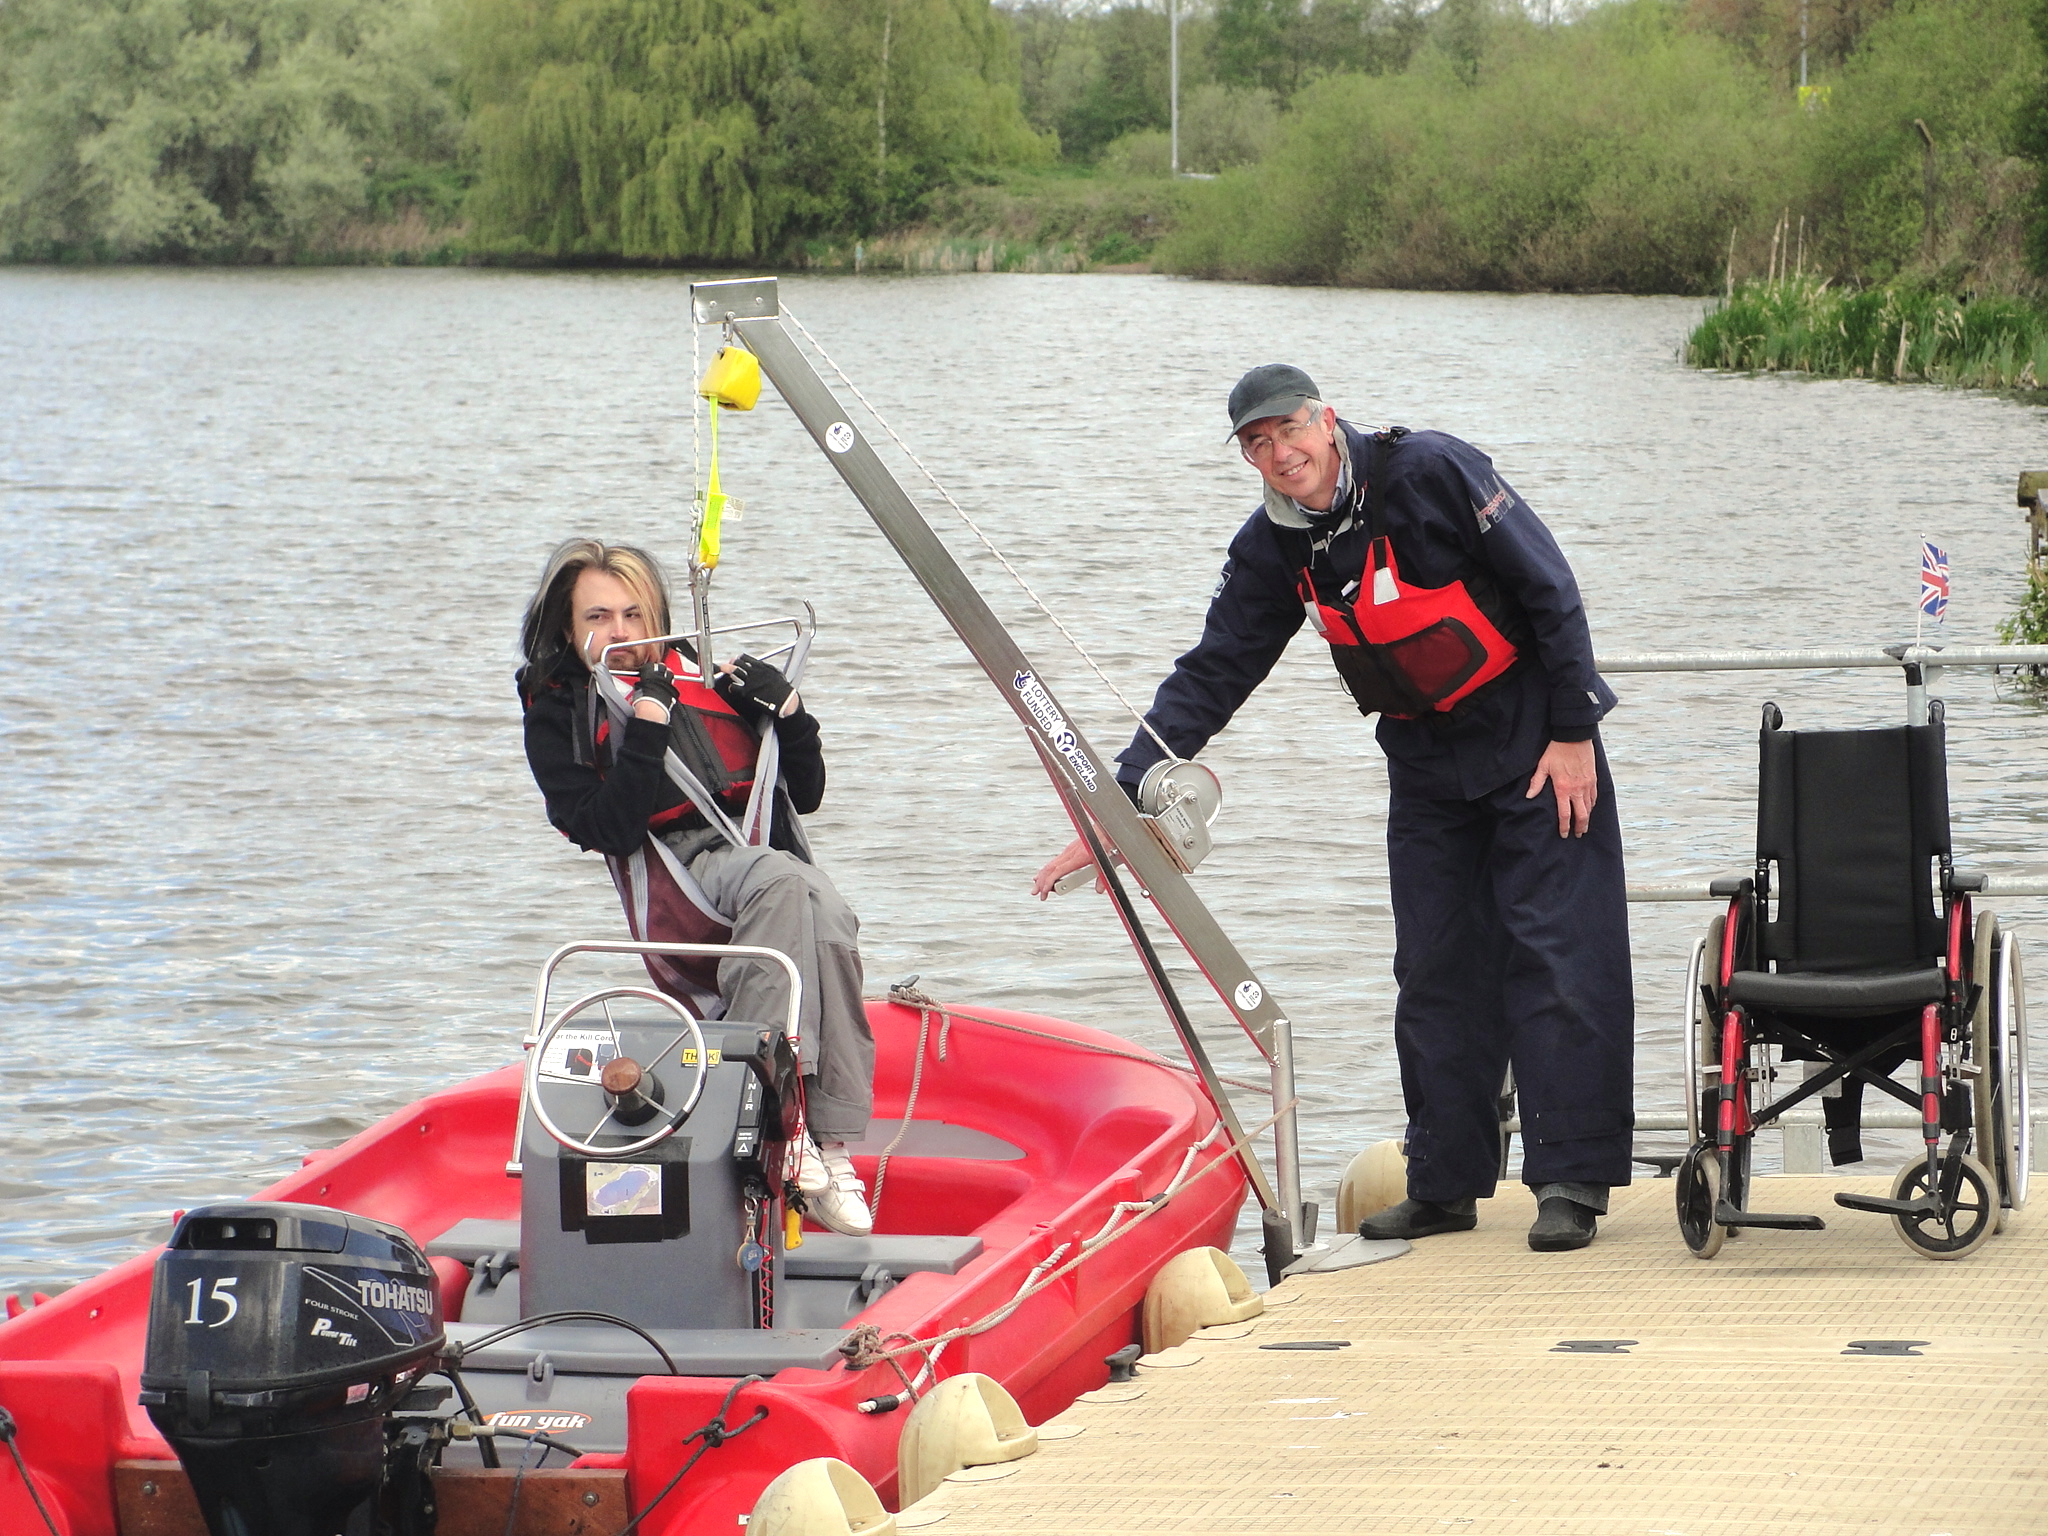 Aldridge welcomes new £37,000 Disabled Sailing Facilities as Free Sailing Continues